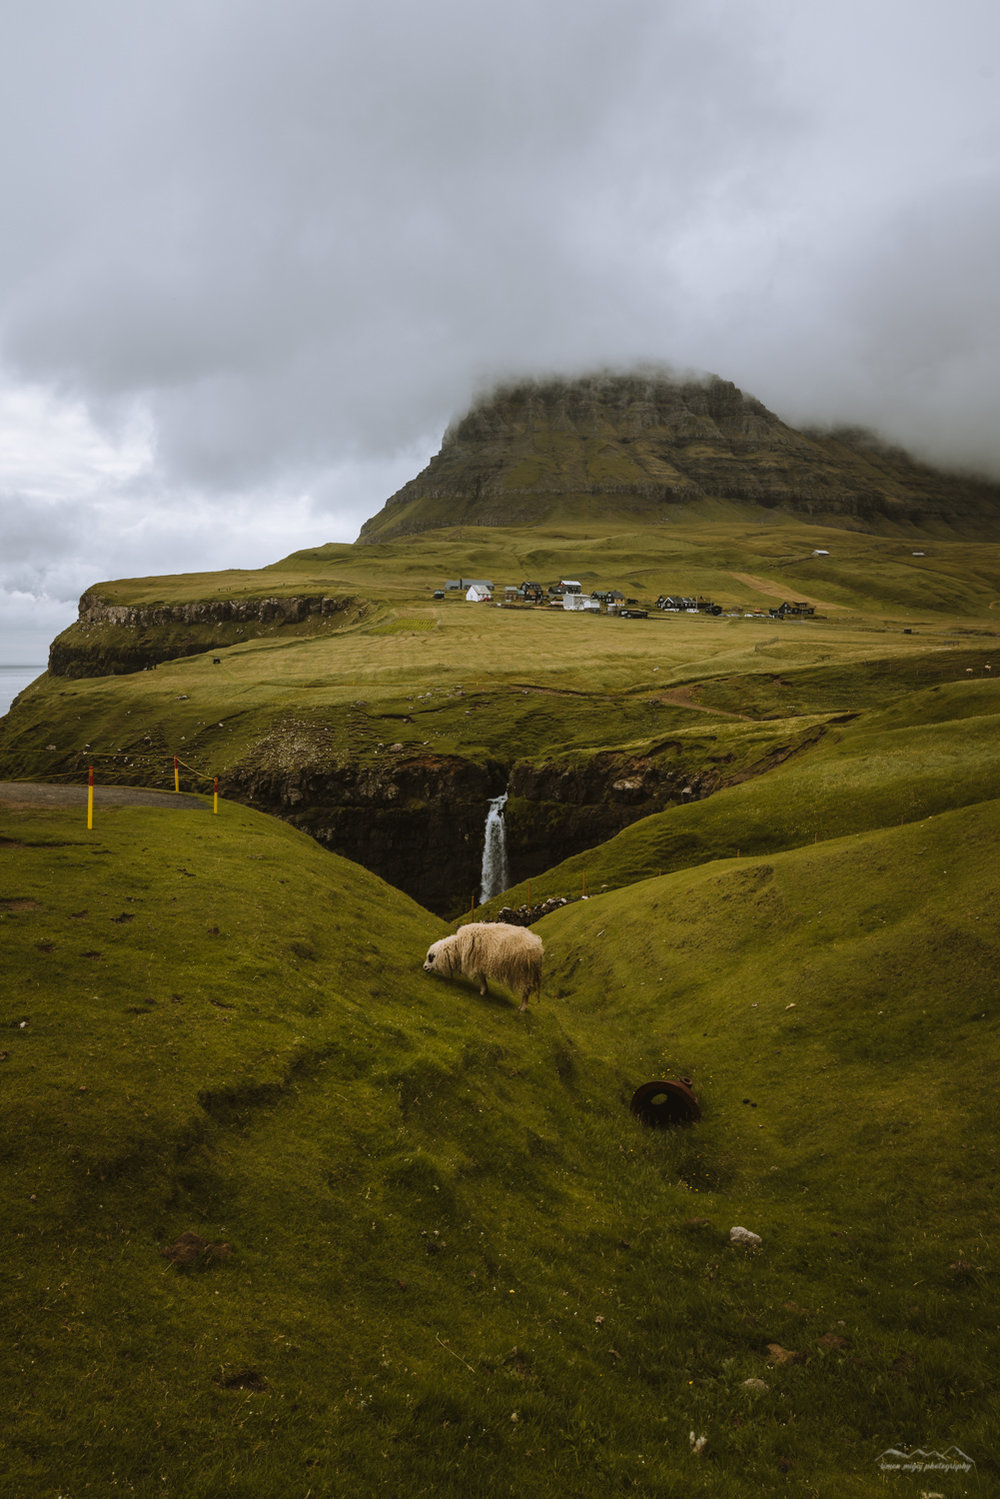 Waterfalls, mountains and sheep... Fare Islands have it all